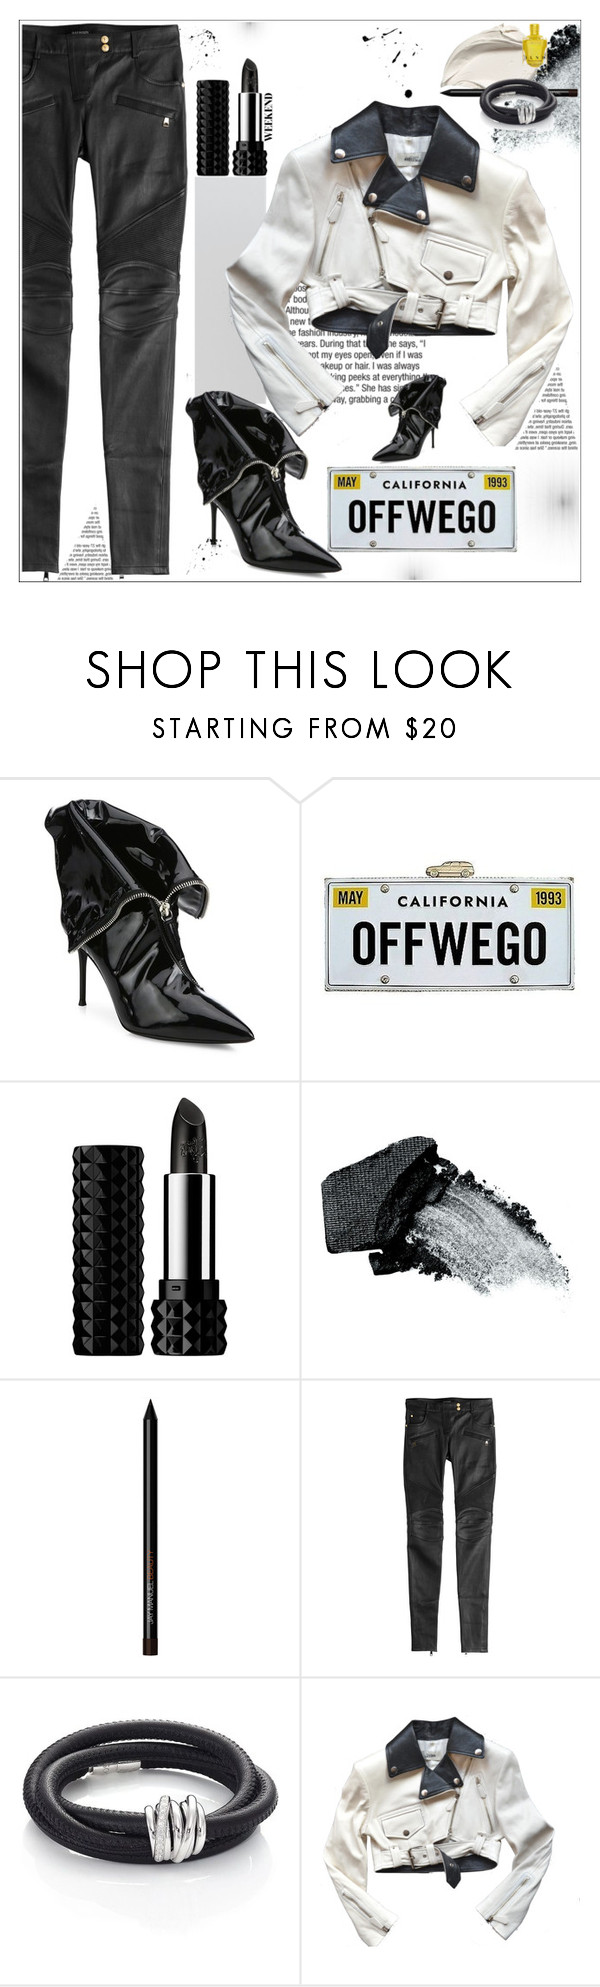 """After Dark: Moto Jackets"" by dragananovcic ❤ liked on Polyvore featuring Giuseppe Zanotti, Kate Spade, Kat Von D, Gorgeous Cosmetics, Balmain, de Grisogono, Jean-Paul Gaultier, polyvoreeditorial, polyvorecontest and motojackets"